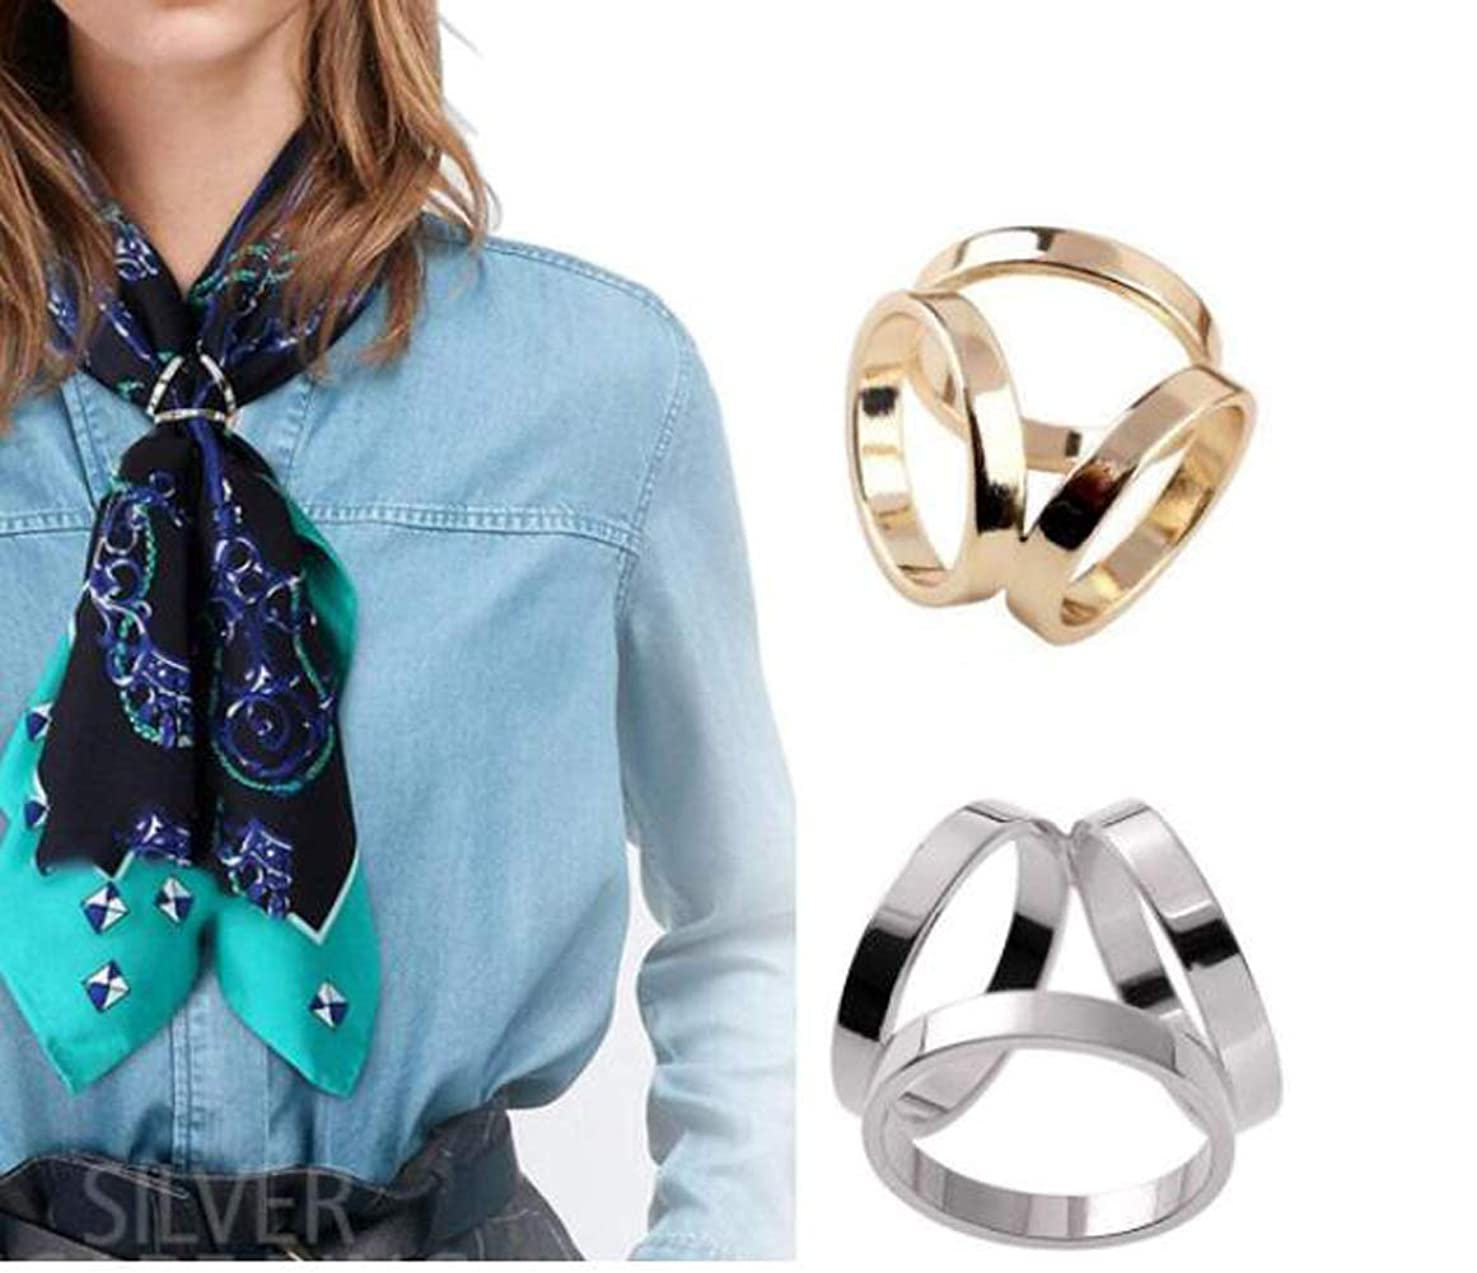 2PCS Women Lady Girls Simple Fashion Three Rings Scarves Buckle Scarf Clip Scarf Ring Wrap Holder Clamp Silk Sarf Clasp for Clothing Neckerchief Shawl Golden Silver Set